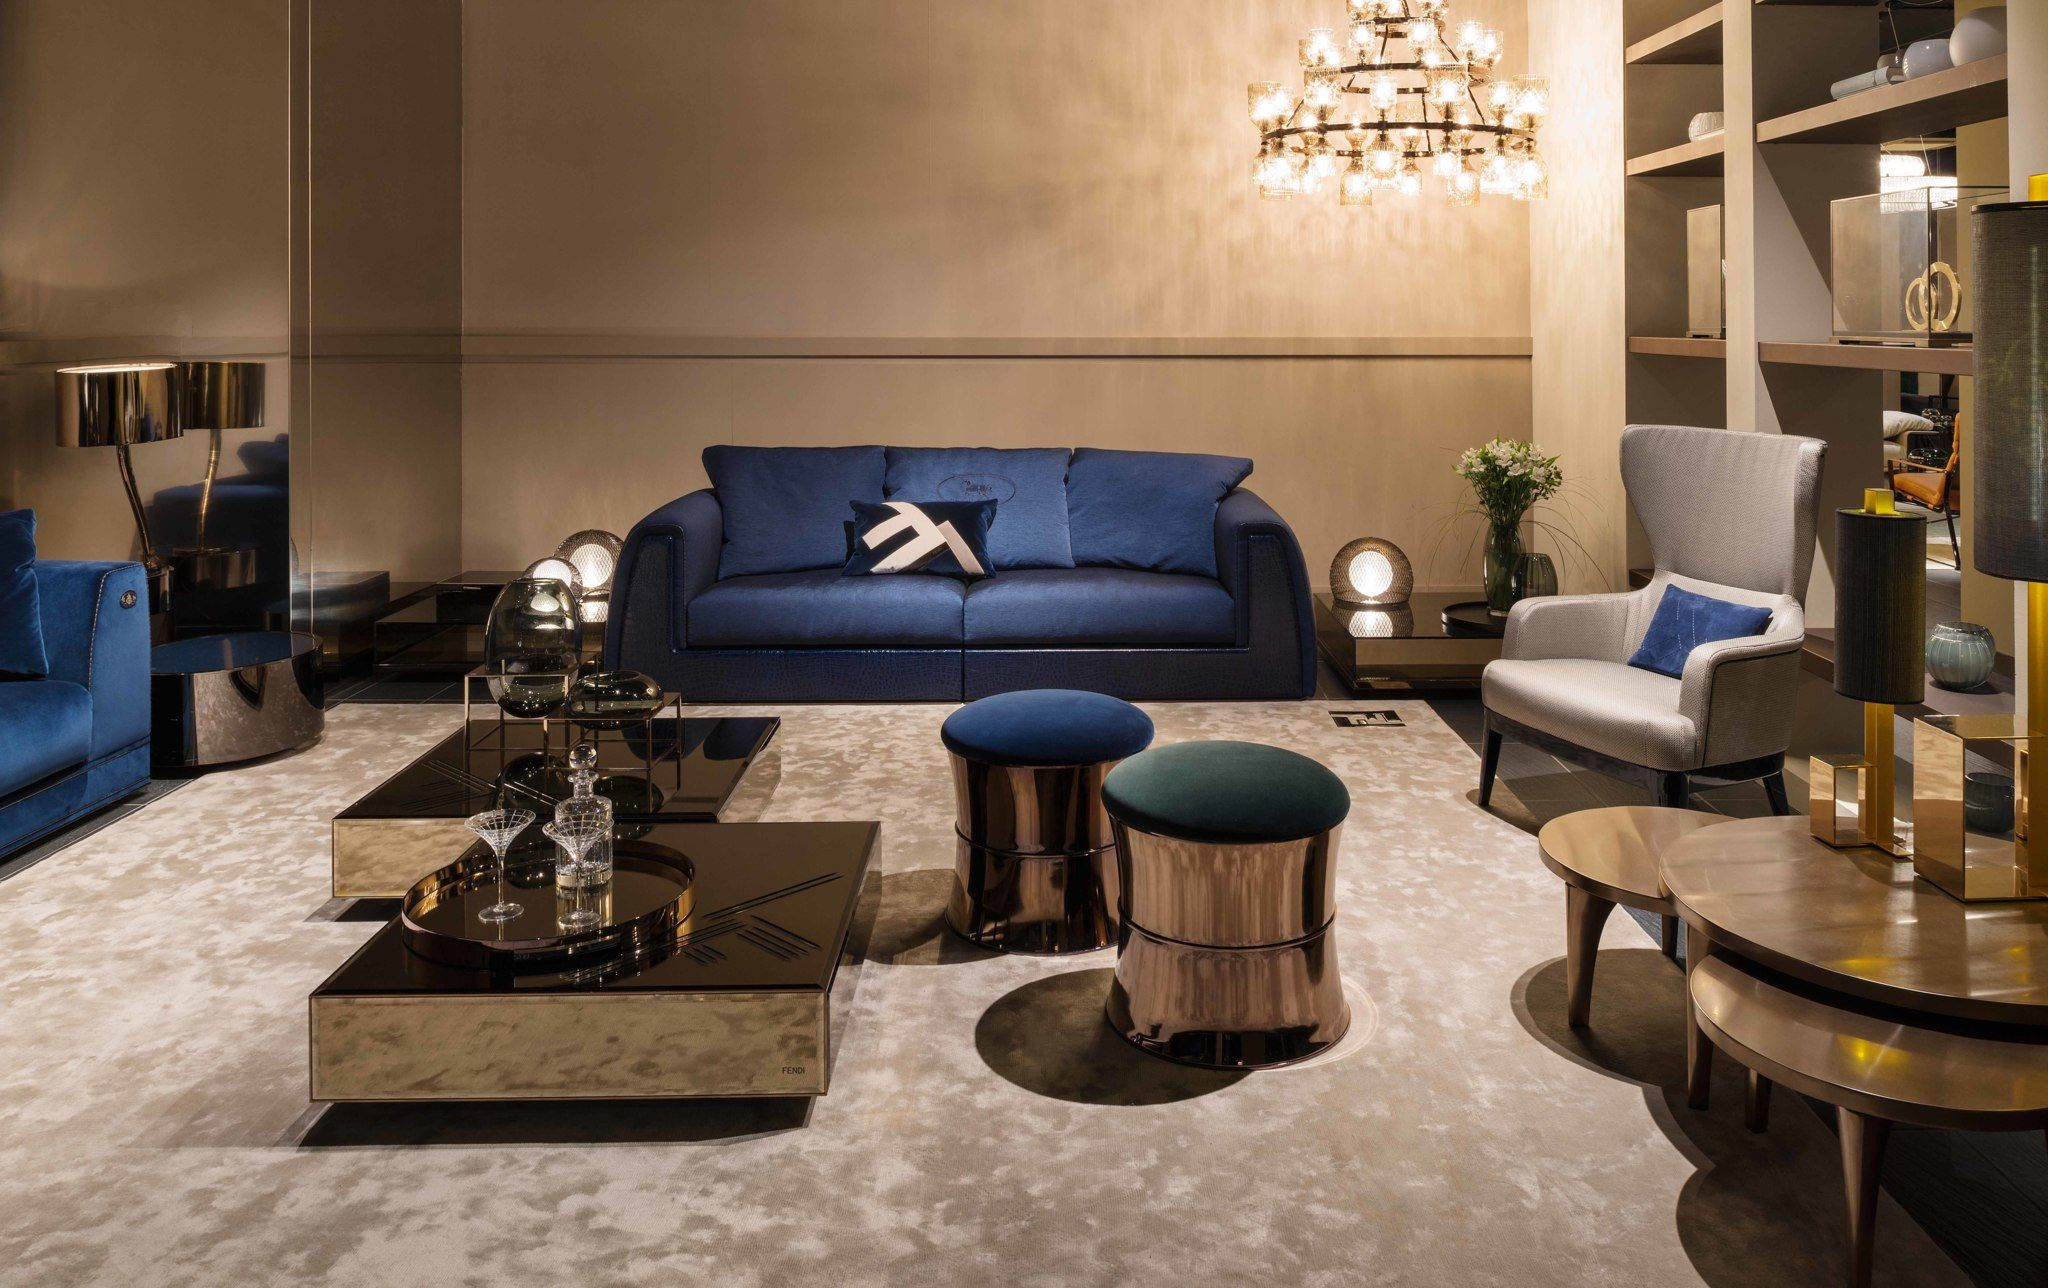 Fendi Casa 2019 Google Search Fendi Casa Furniture Home Decor